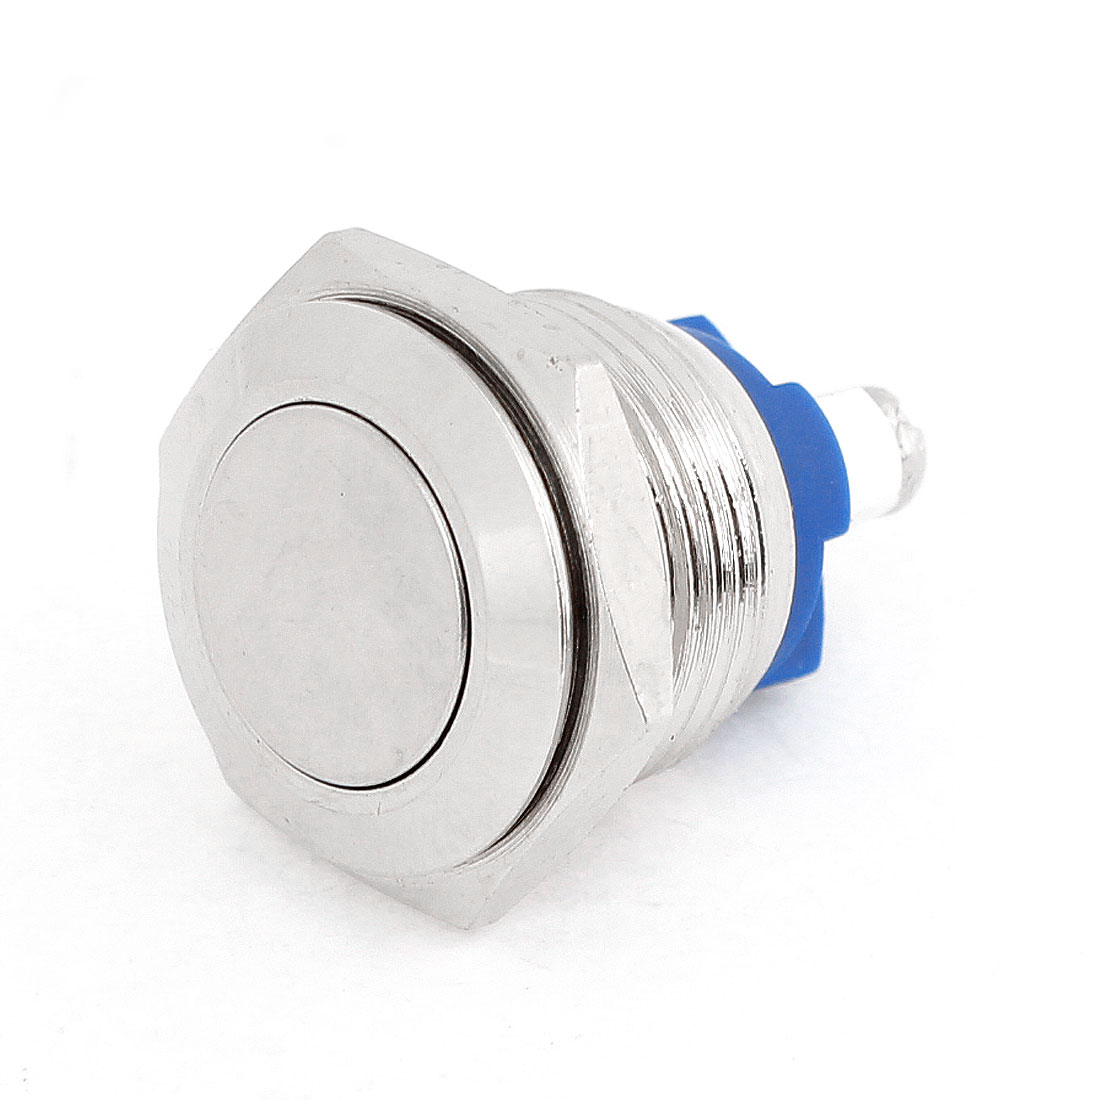 AC 250V 3A Flat Head SPST Momentary Type Push Button Switch